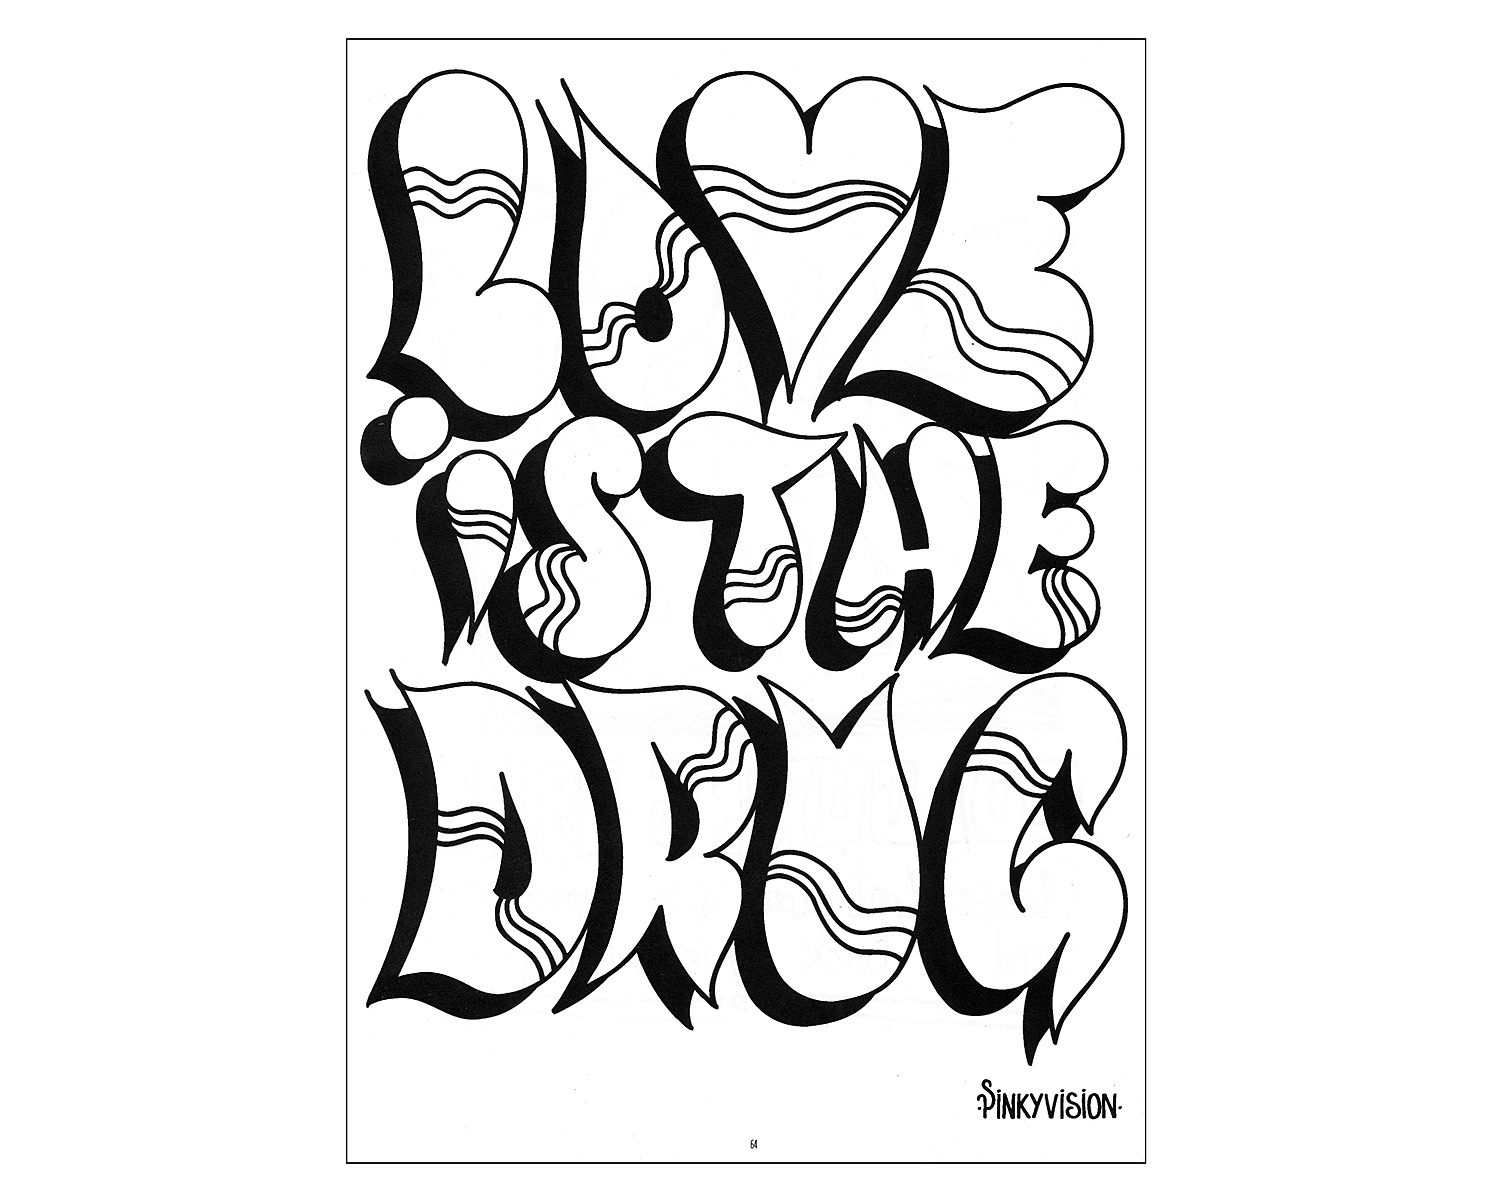 coloring sheets cool graffiti coloring pages to download and print for free cool coloring sheets